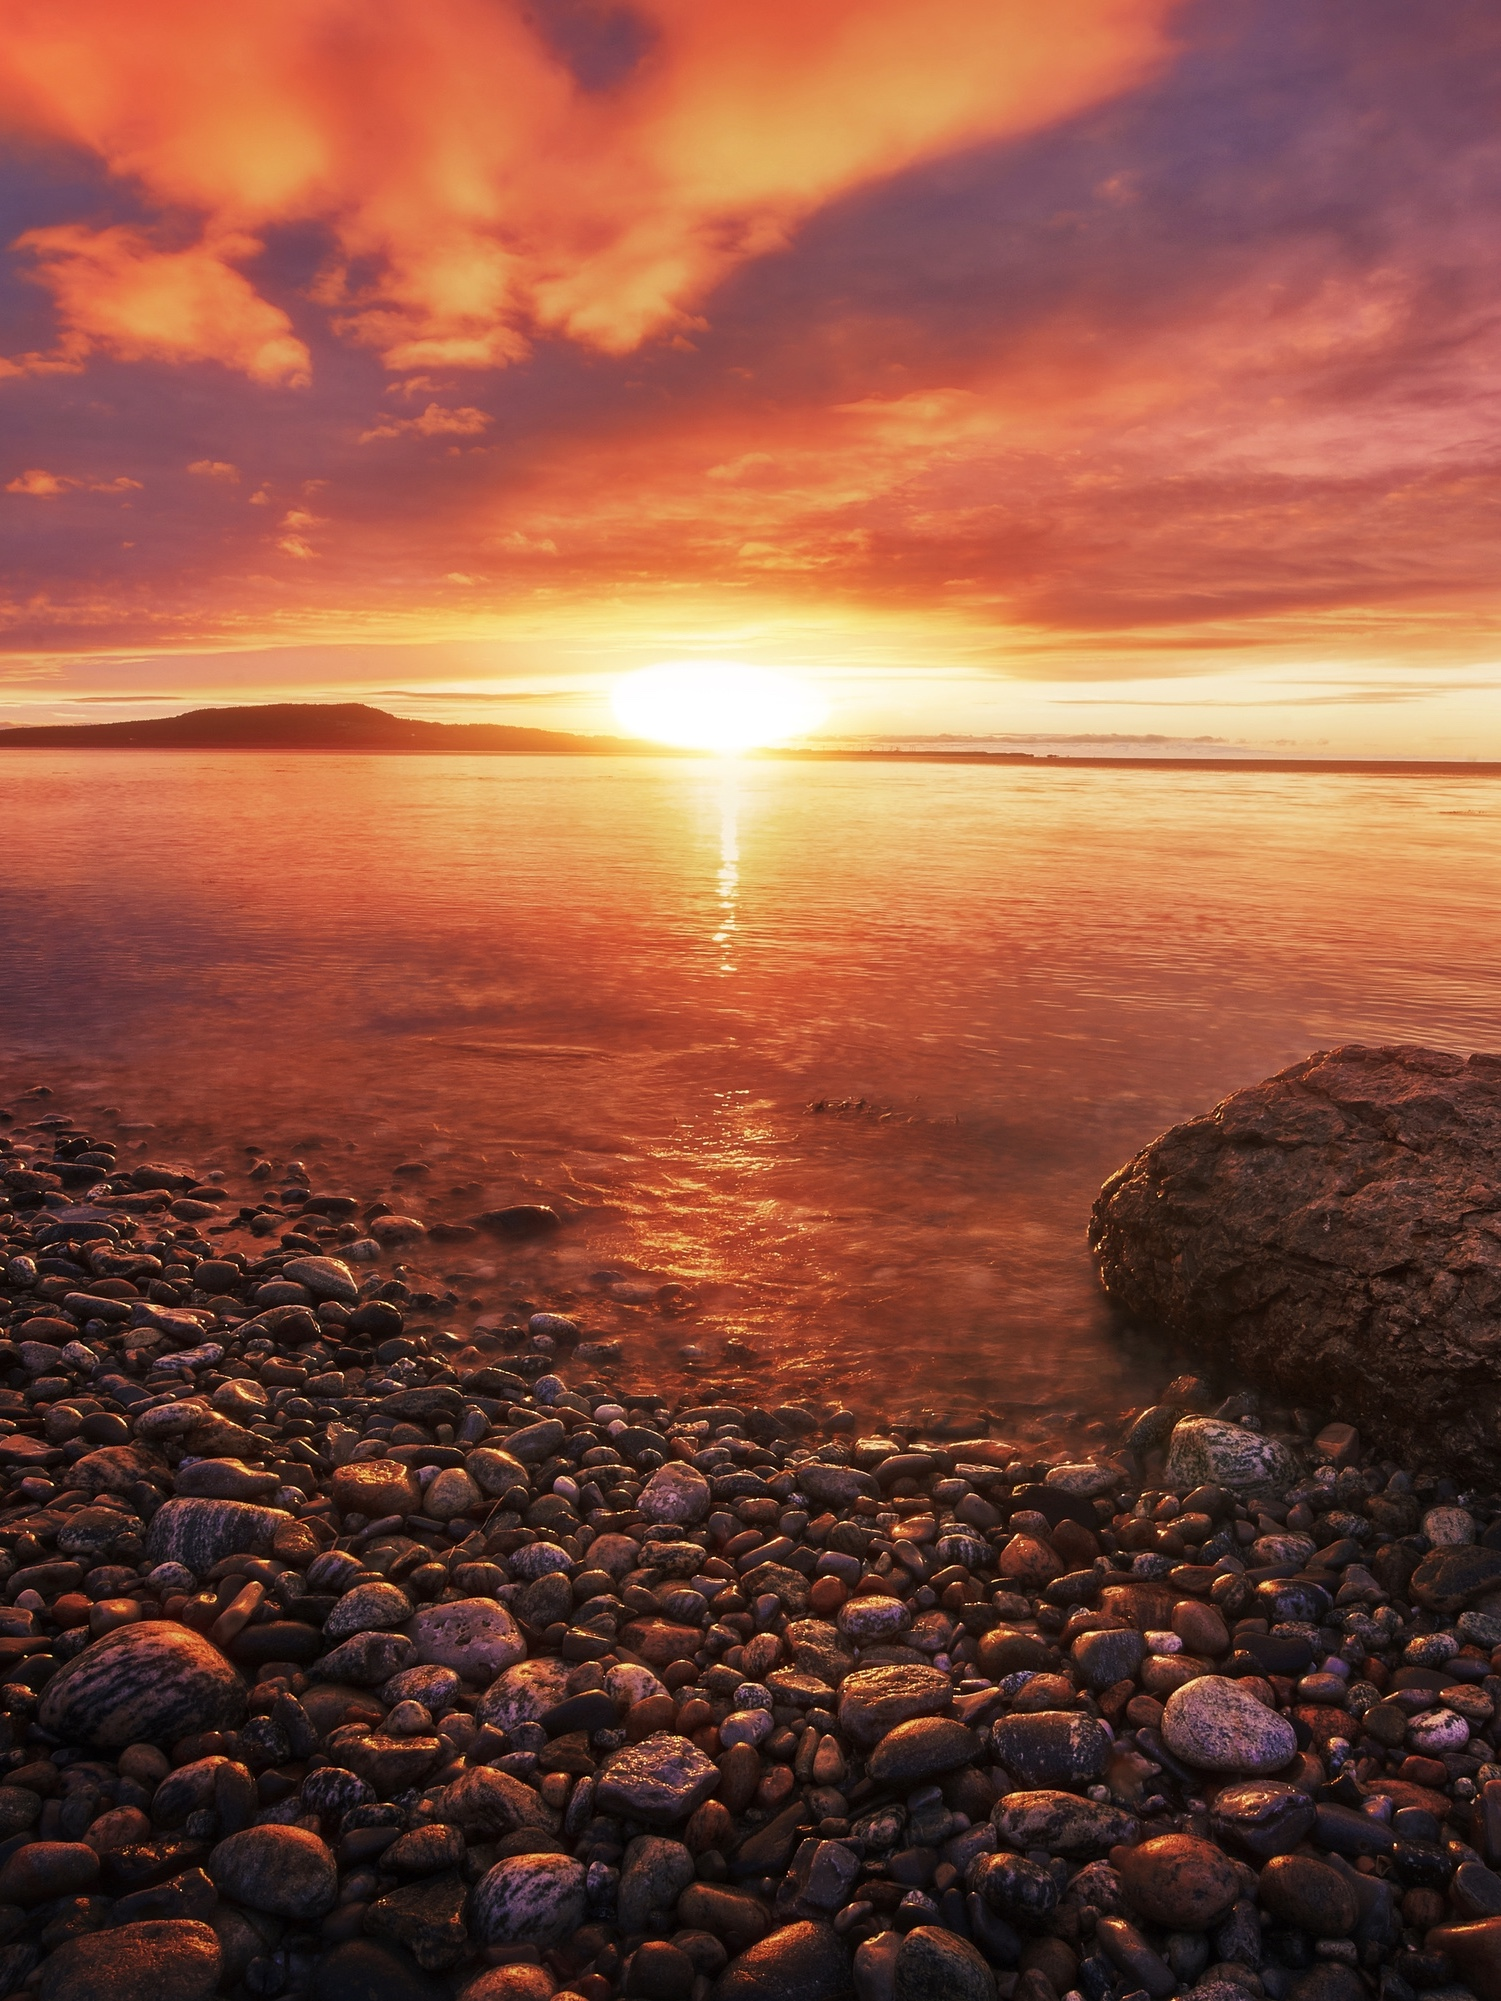 The sun setting on the shores of Shallow Bay in West Newfoundland. The shore is very rocky with large and small rocks. There is a large rock in the water on the shore. The sky is red, orange, and yellow.